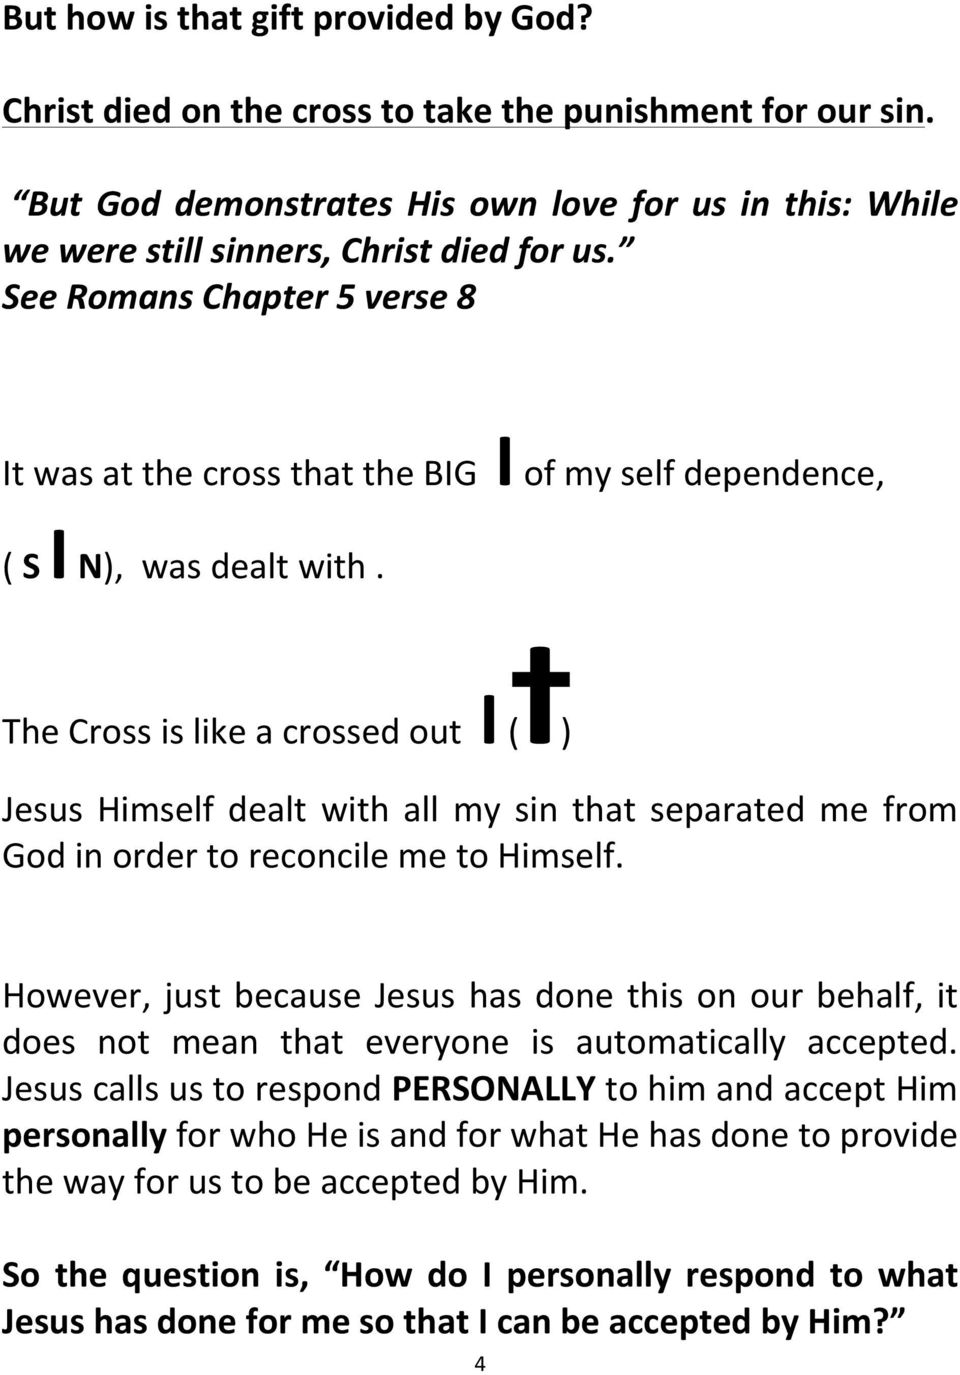 The Cross is like a crossed out I (I) Jesus Himself dealt with all my sin that separated me from God in order to reconcile me to Himself.